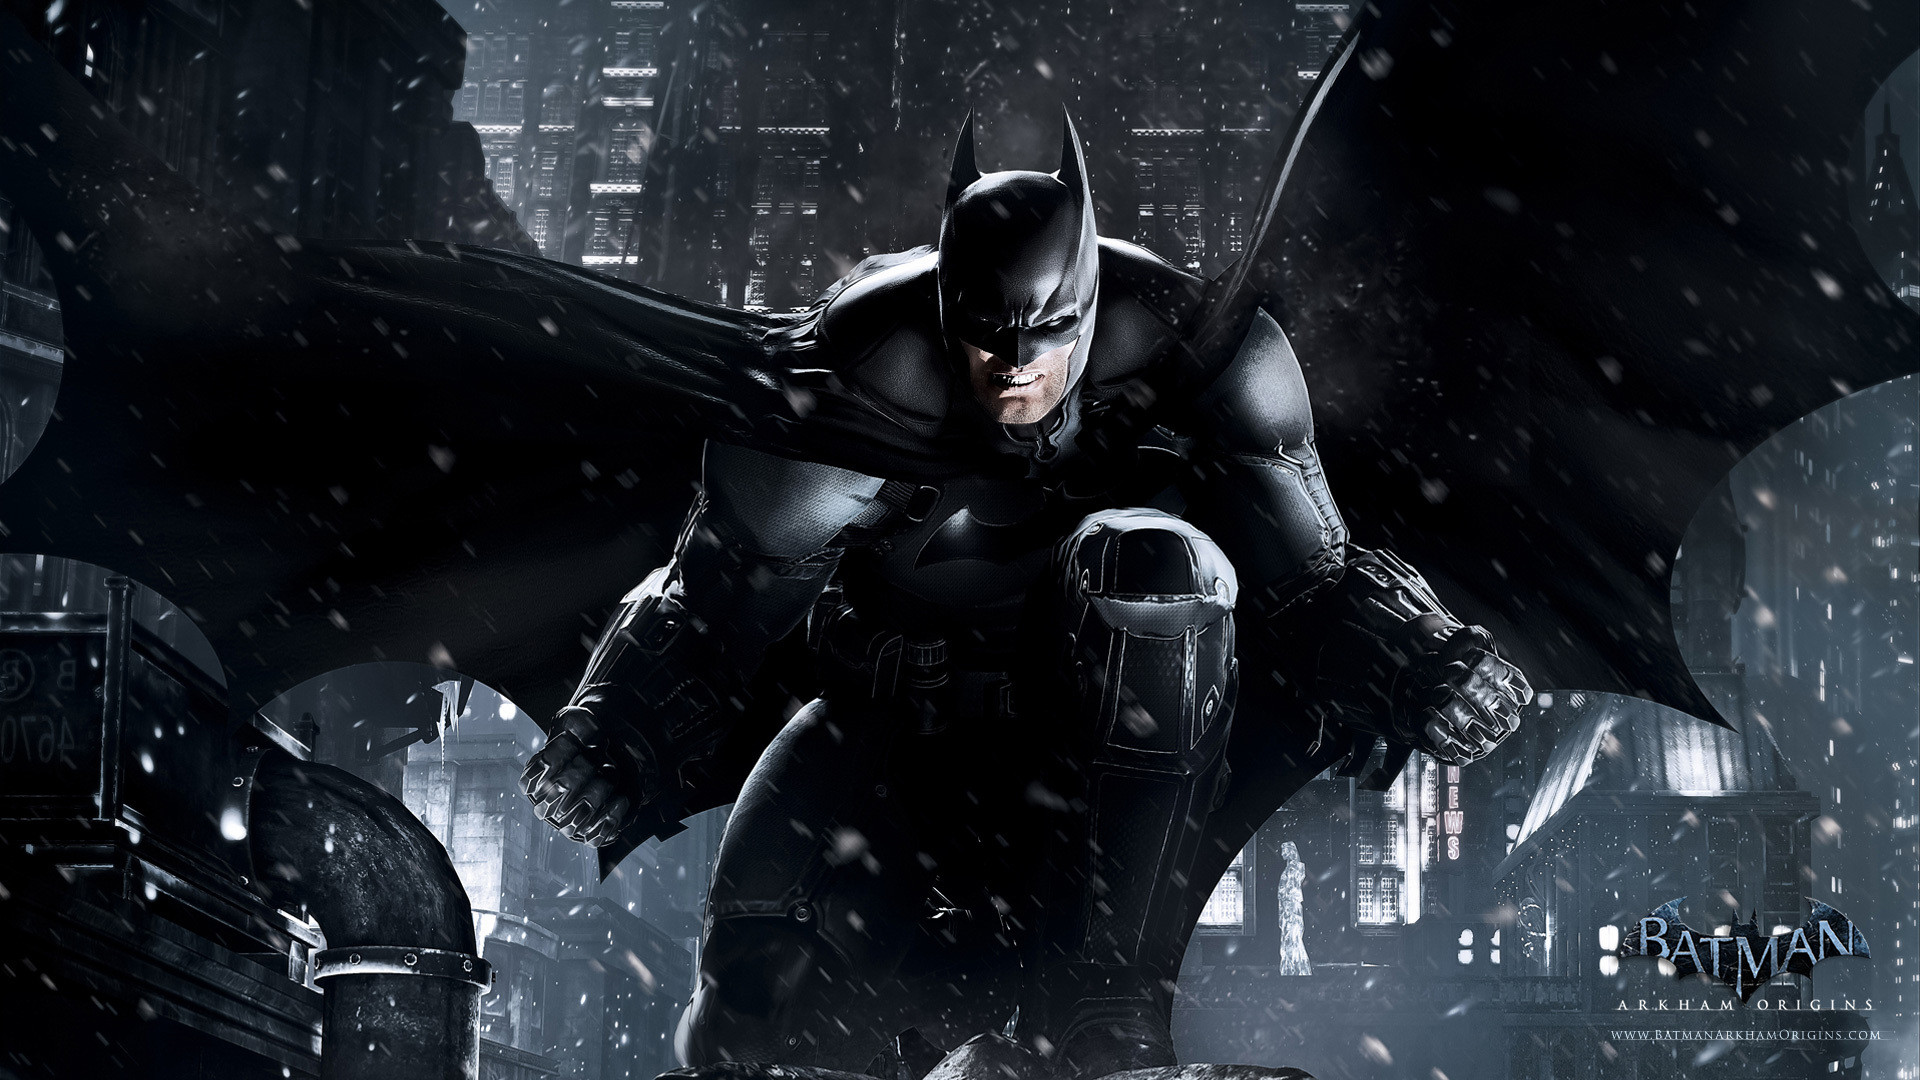 Batman Arkham Origins Wallpaper Hd 84 Images